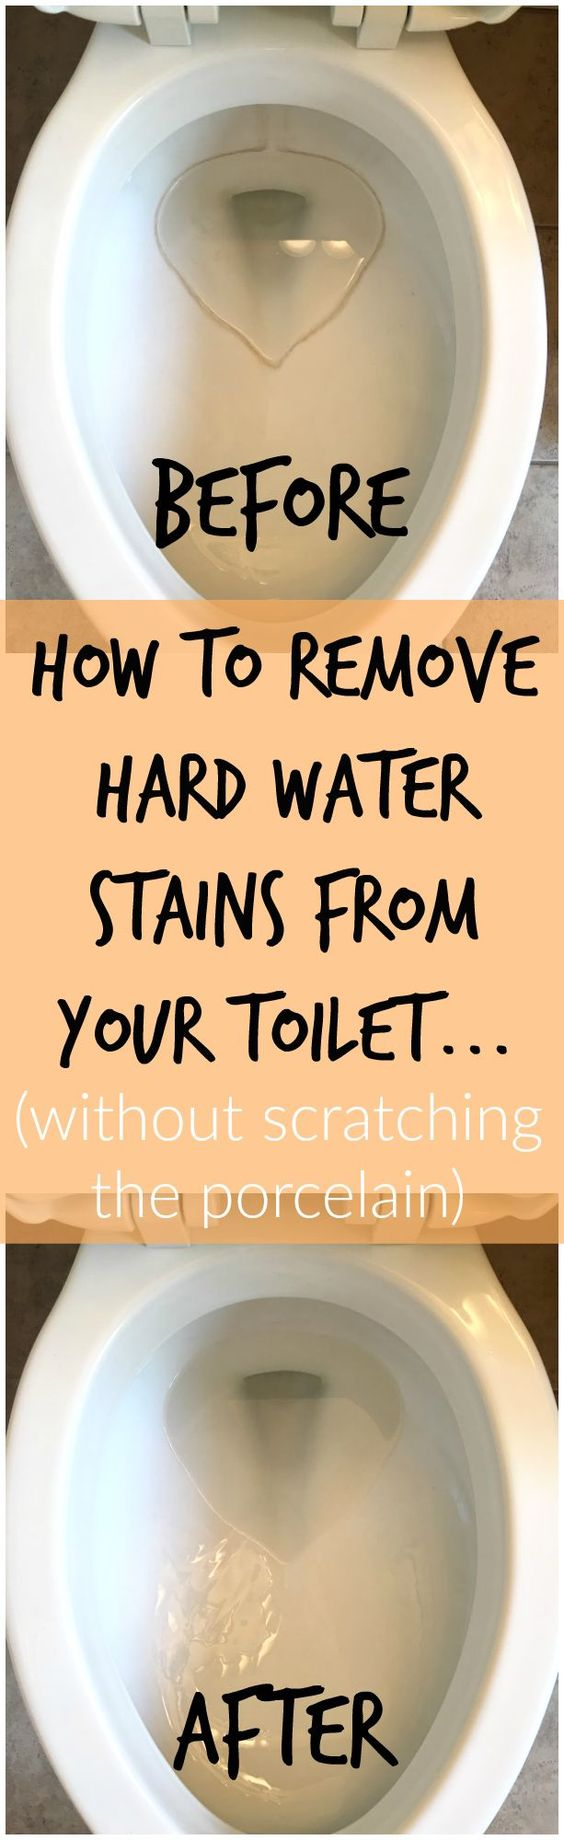 repairs hometalk tips hard water how a home stains ideas remove bathroom maintenance tub cleaning to sink from porcelain